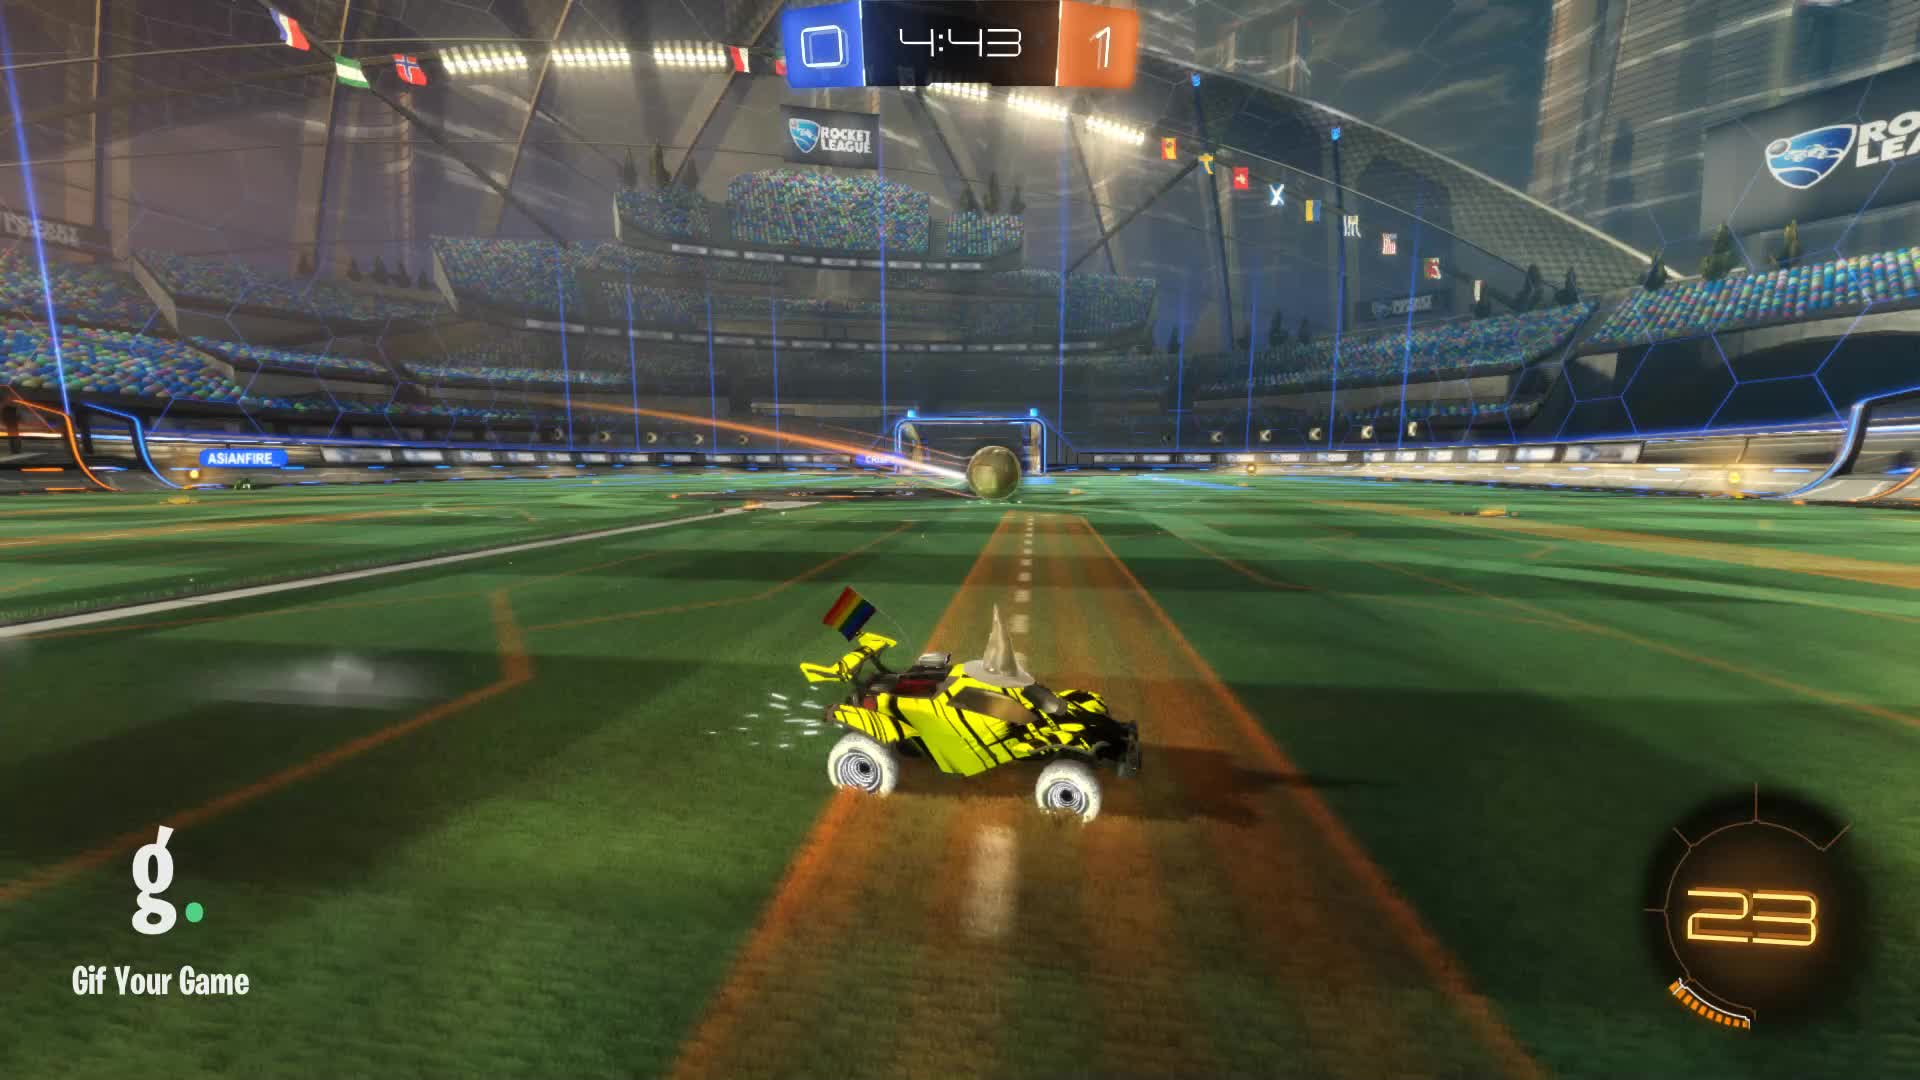 Gif Your Game, GifYourGame, I like beards :), Rocket League, RocketLeague, Goal 2: I like beards :) GIFs